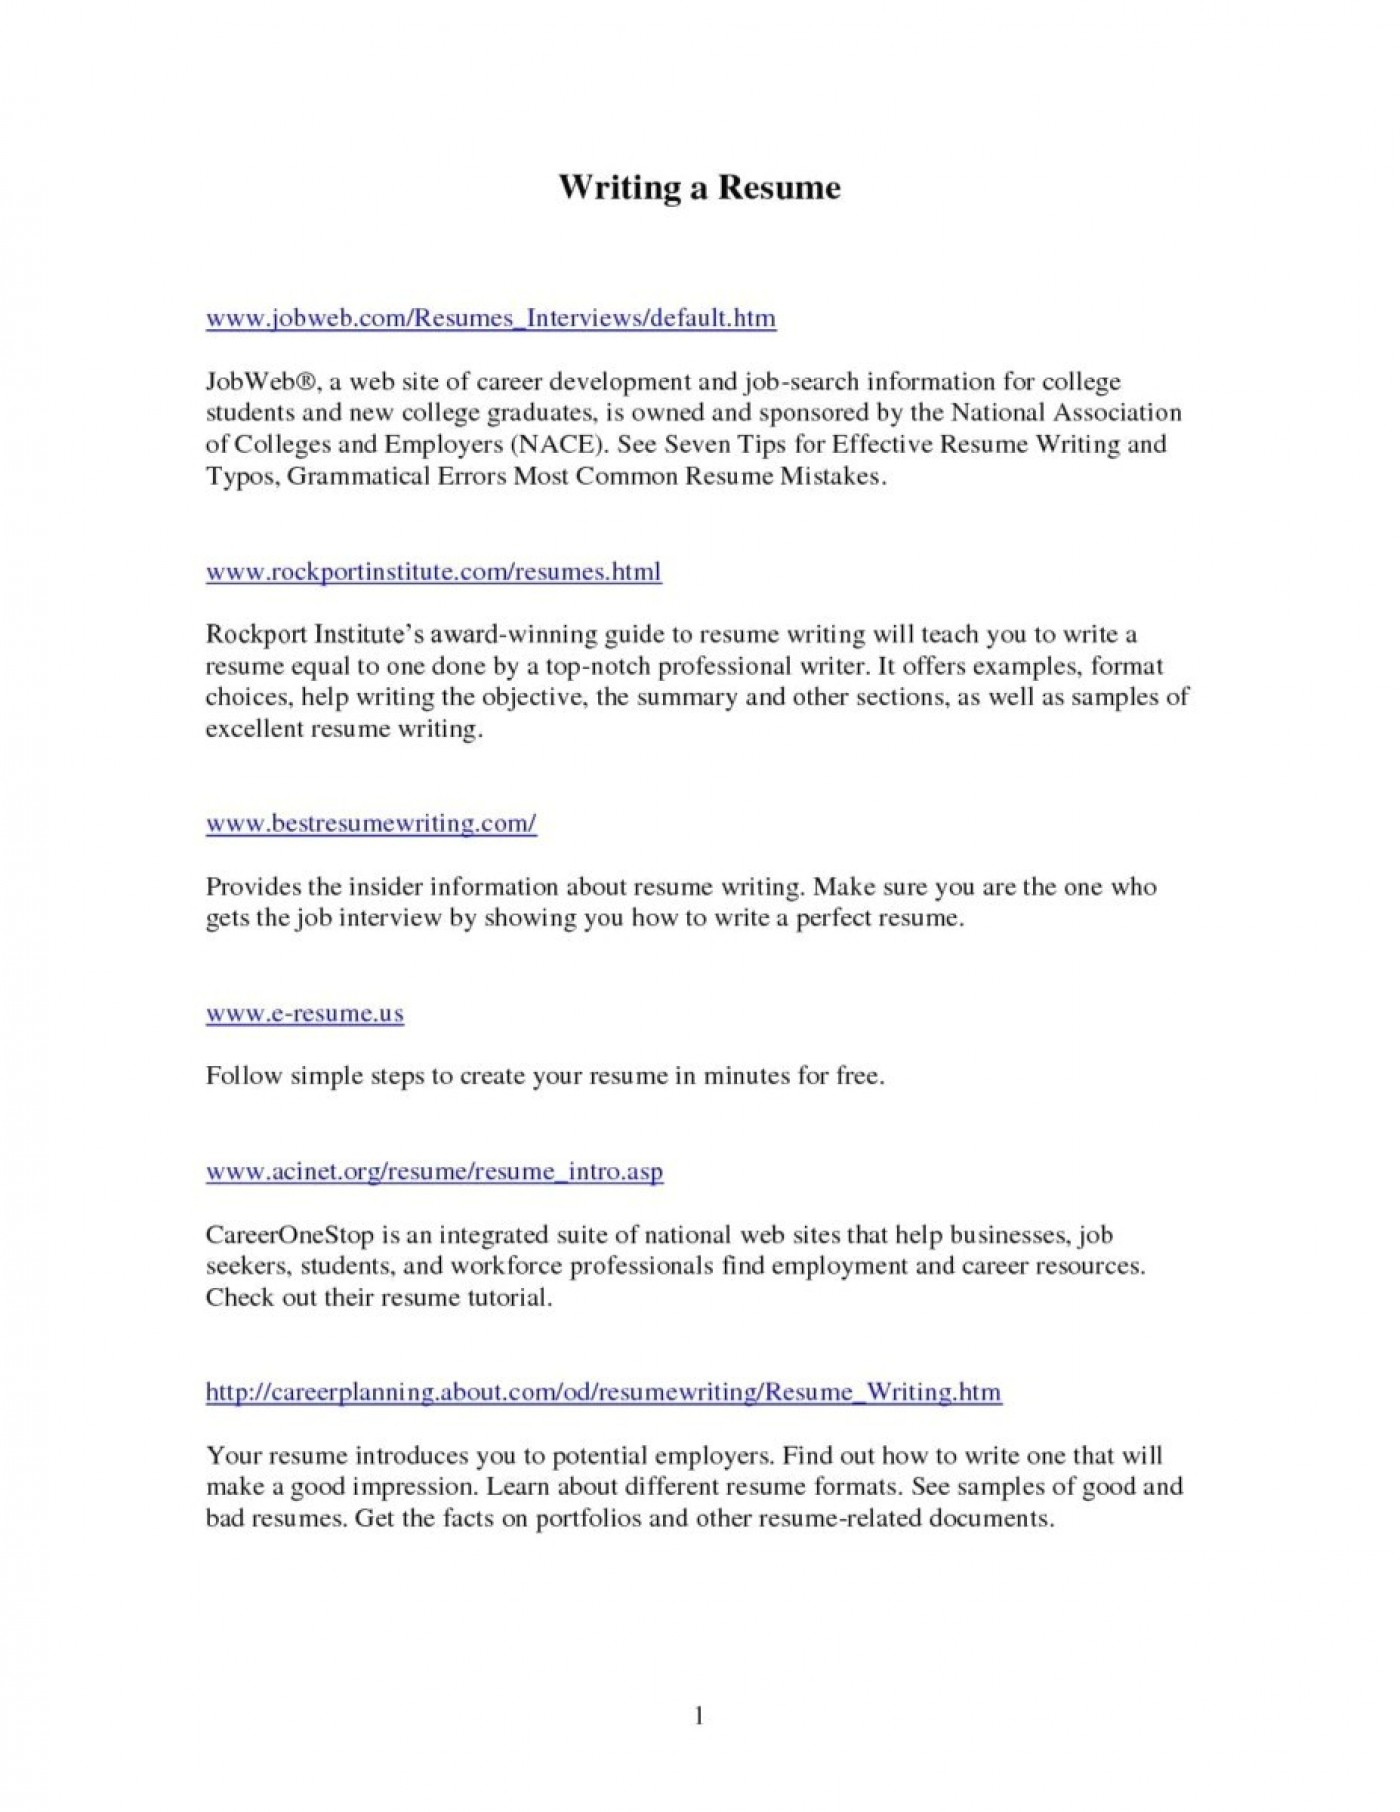 010 How To Write Research Paper Outline Apa Resume Writing Service Reviews Format Best Writers Inspirational Help Professional Of Free Beautiful A Style 1400